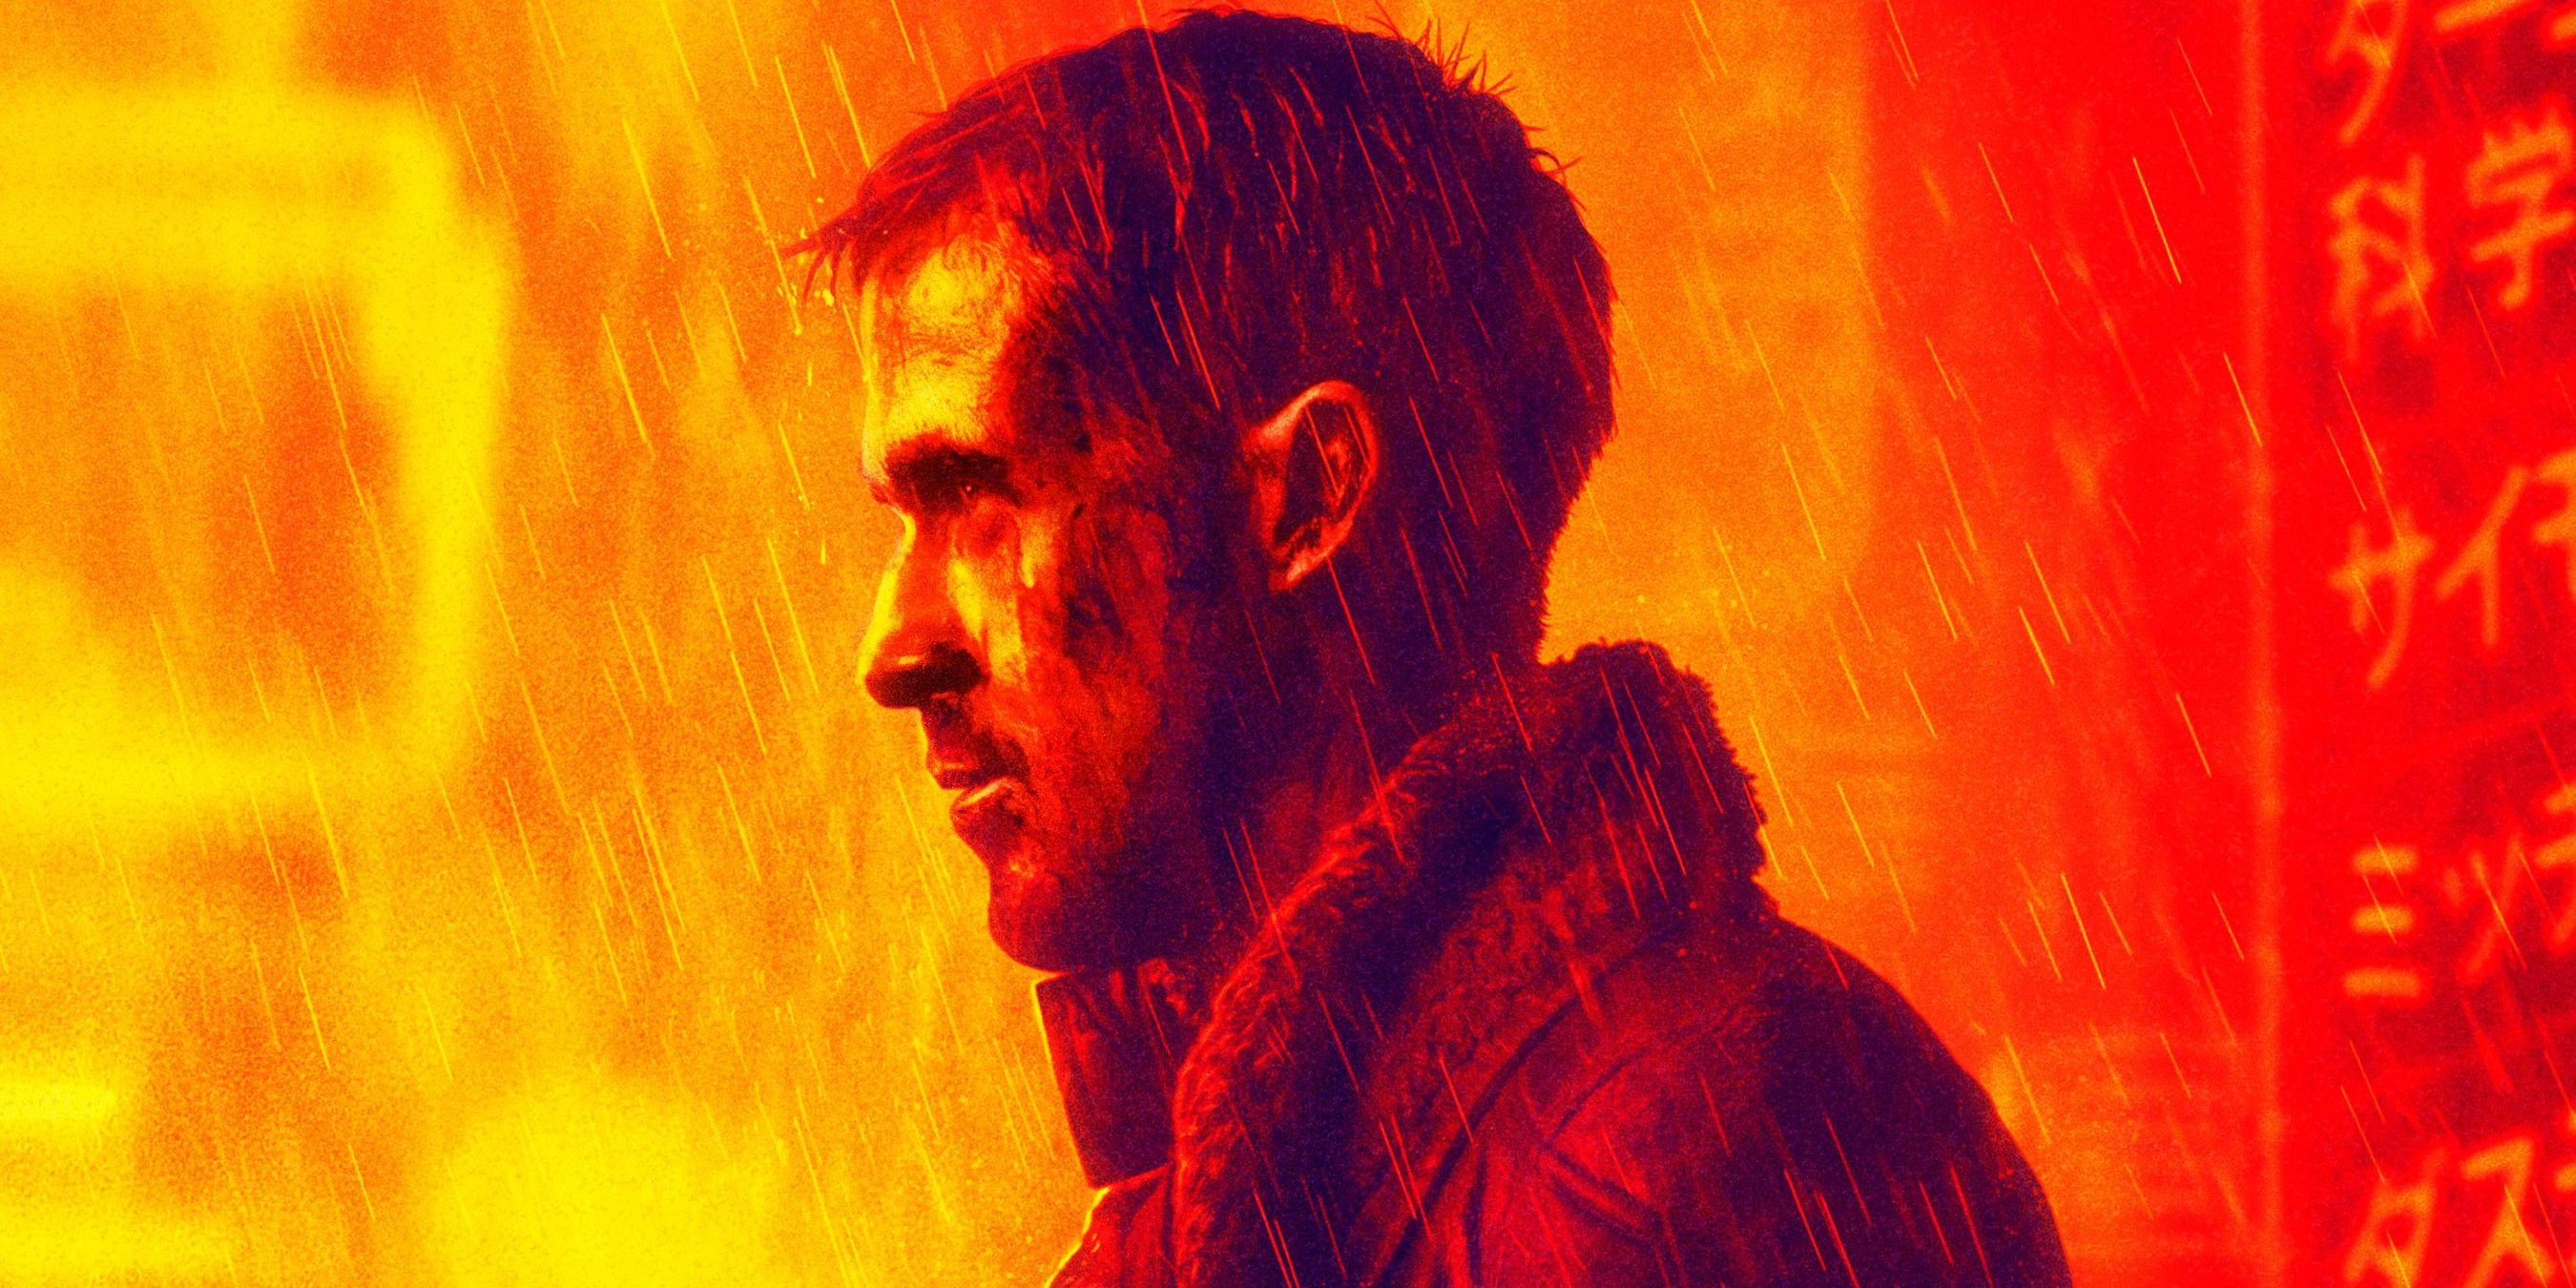 Blade Runner 2049 Director Wants to Make a Spinoff, Not a Sequel